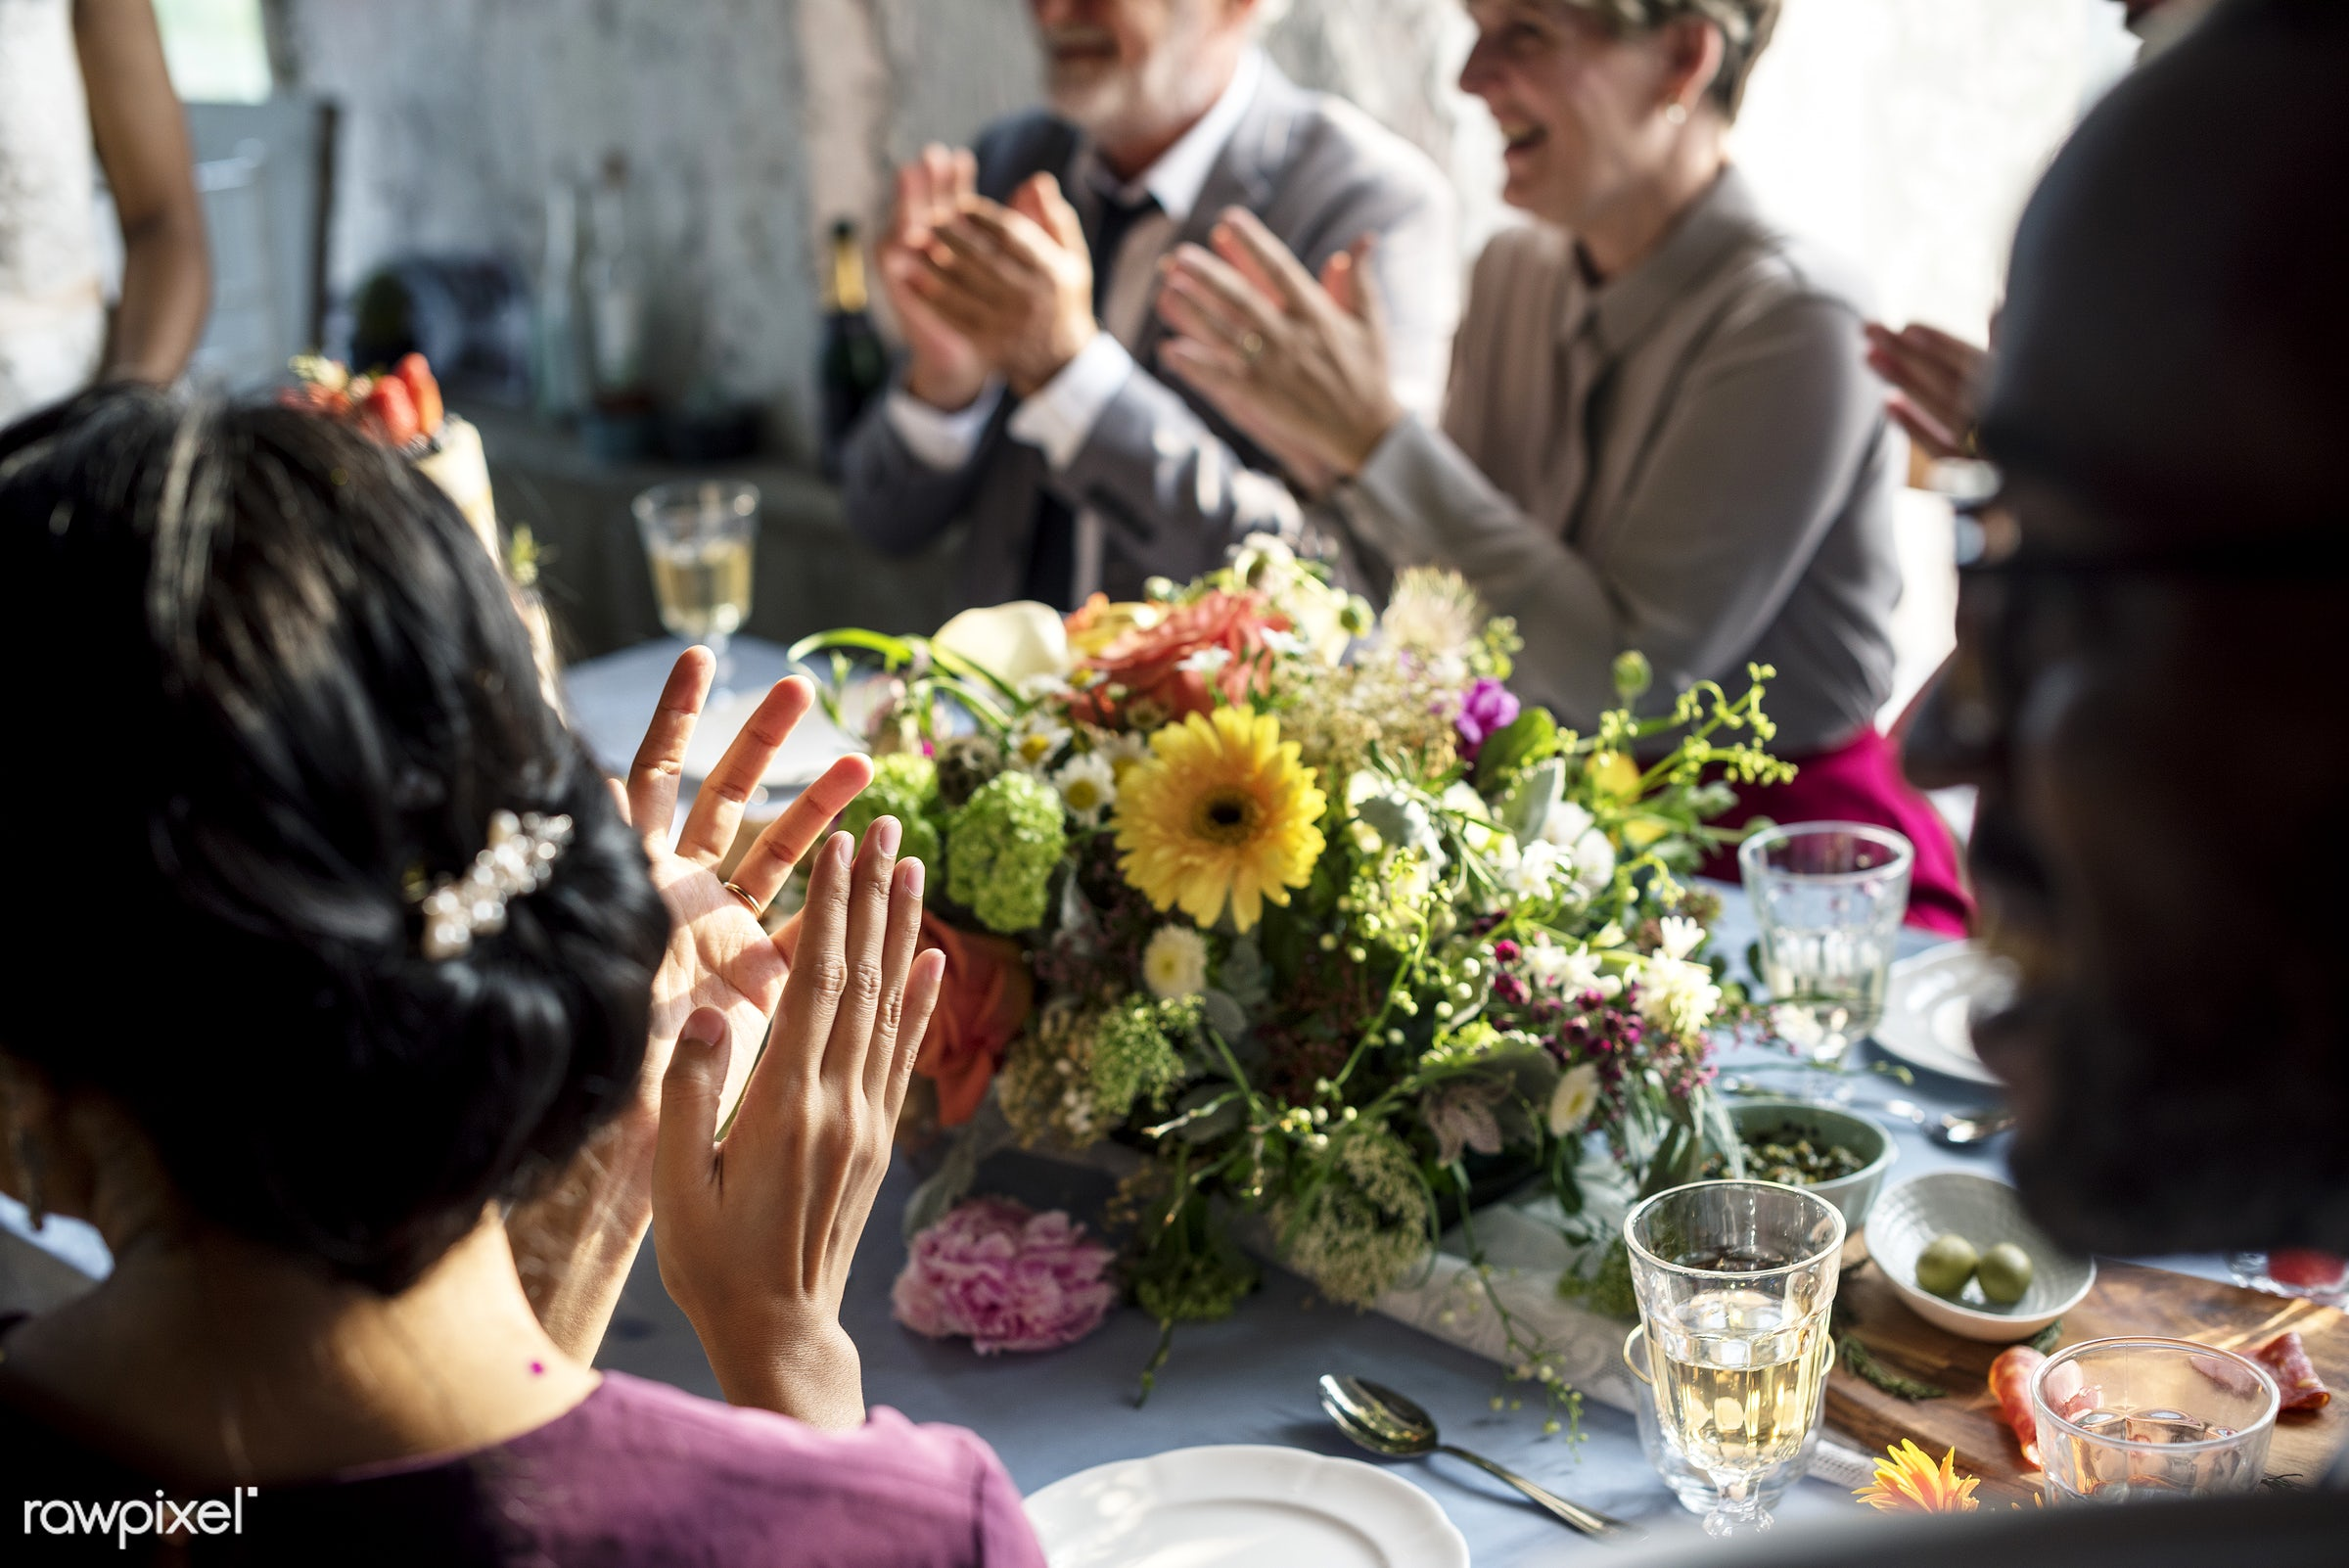 diverse, occasion, party, people, together, friends, congrats, hands, gathering, banquet, flowers, cheerful, closeup,...